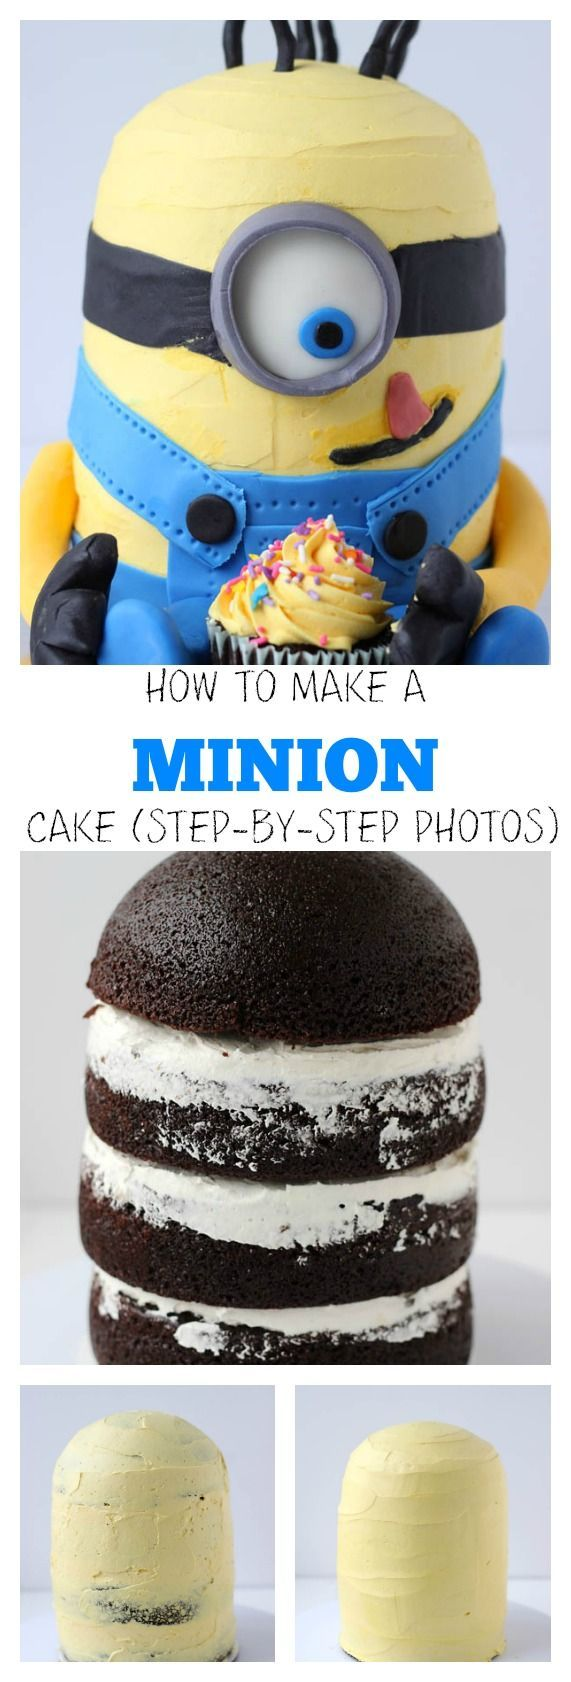 How To Make A Minion Cake Step By Step Tutorial Minion Cakes